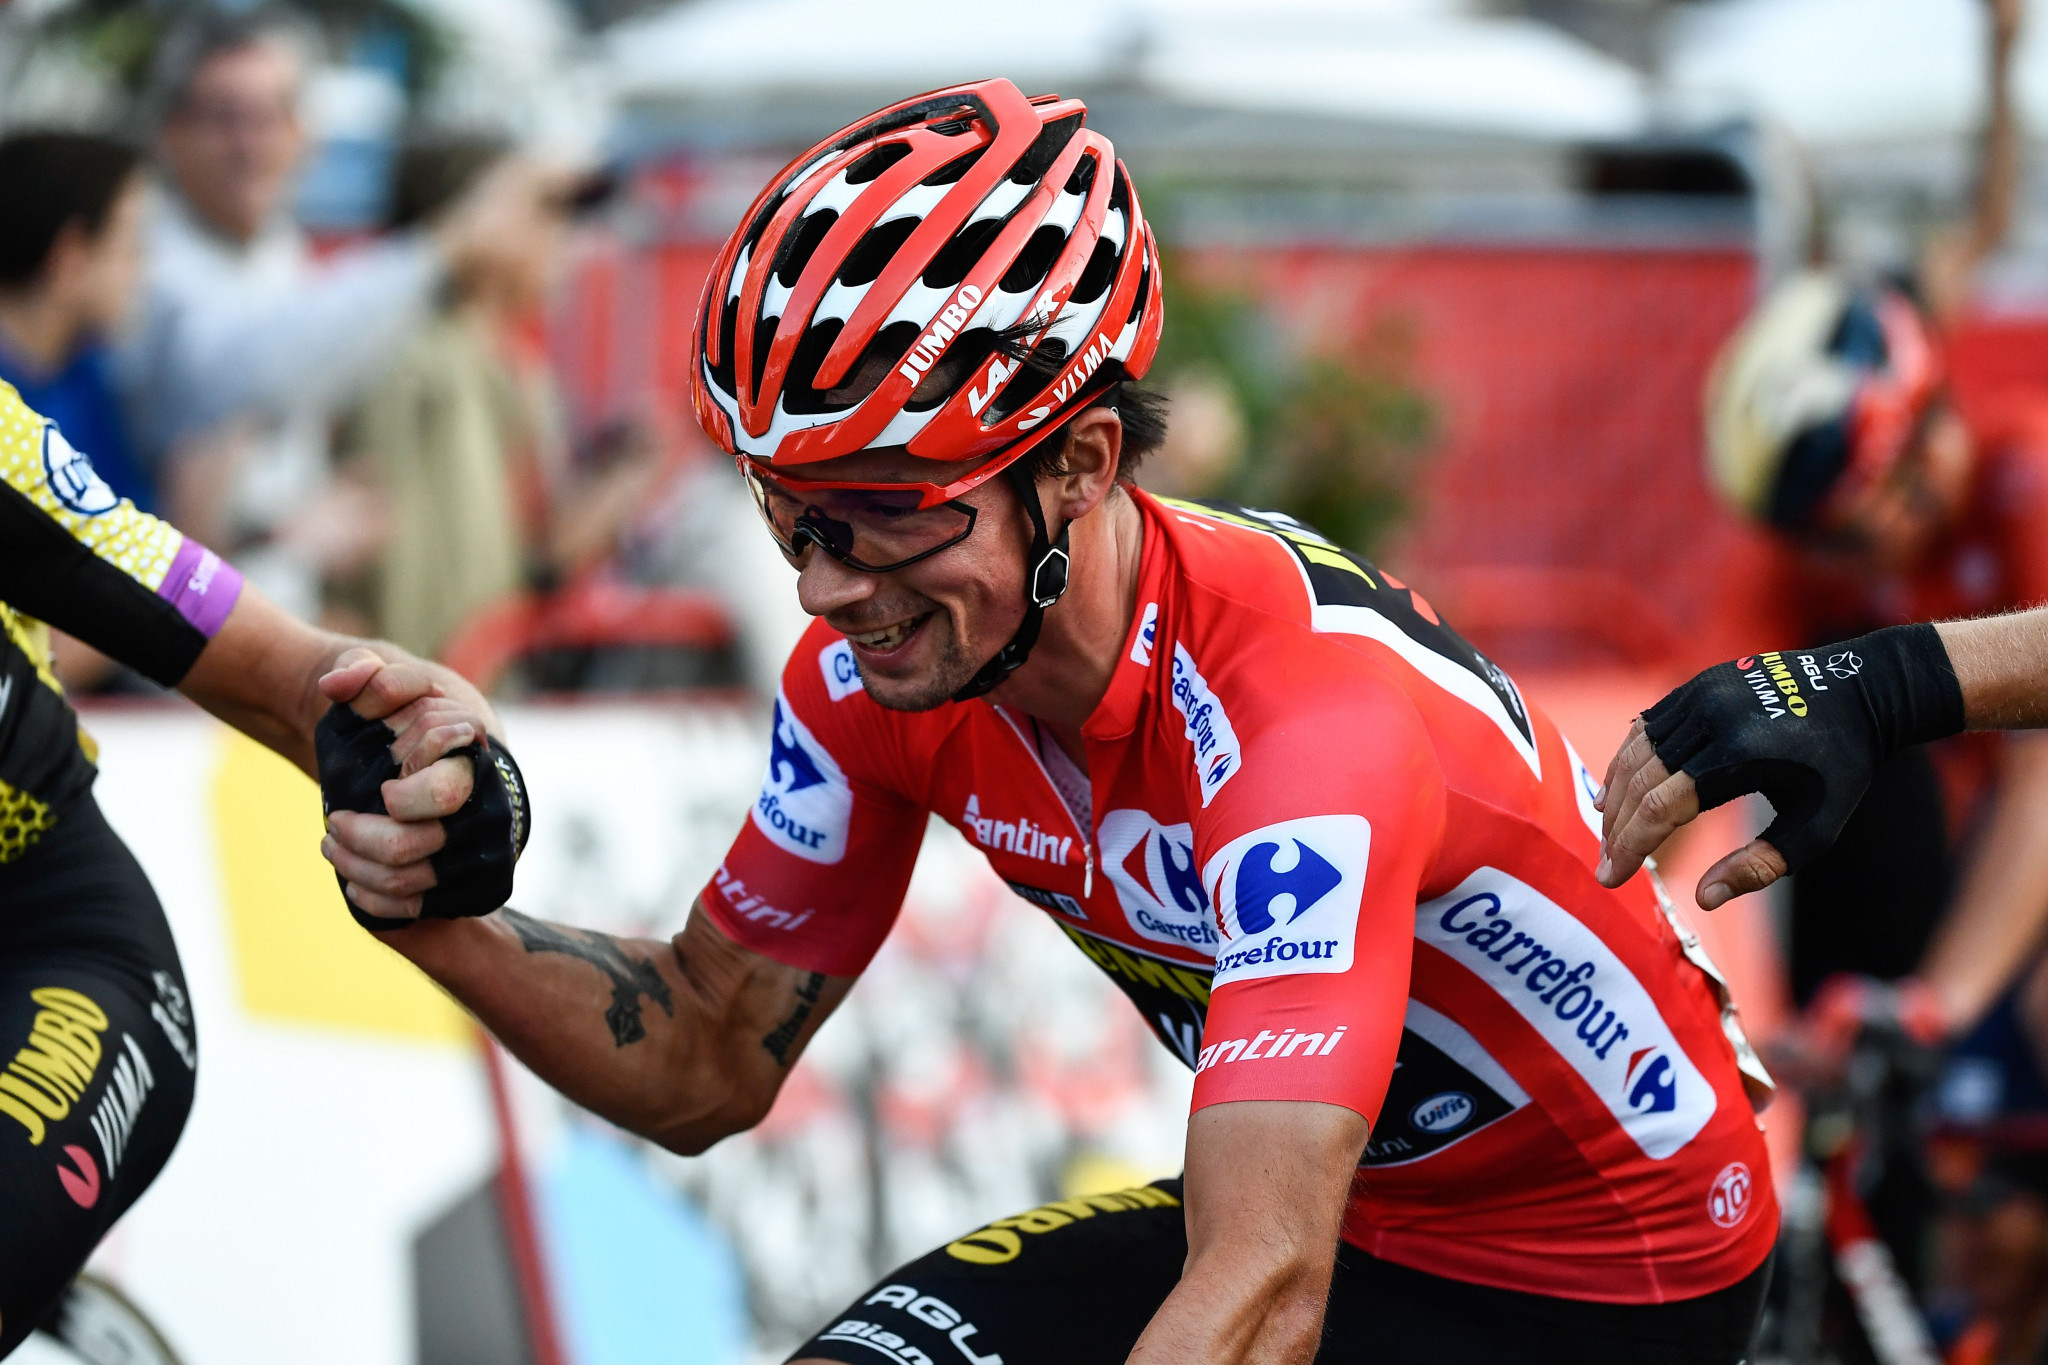 Roglič secures first Grand Tour title with victory at Vuelta a España